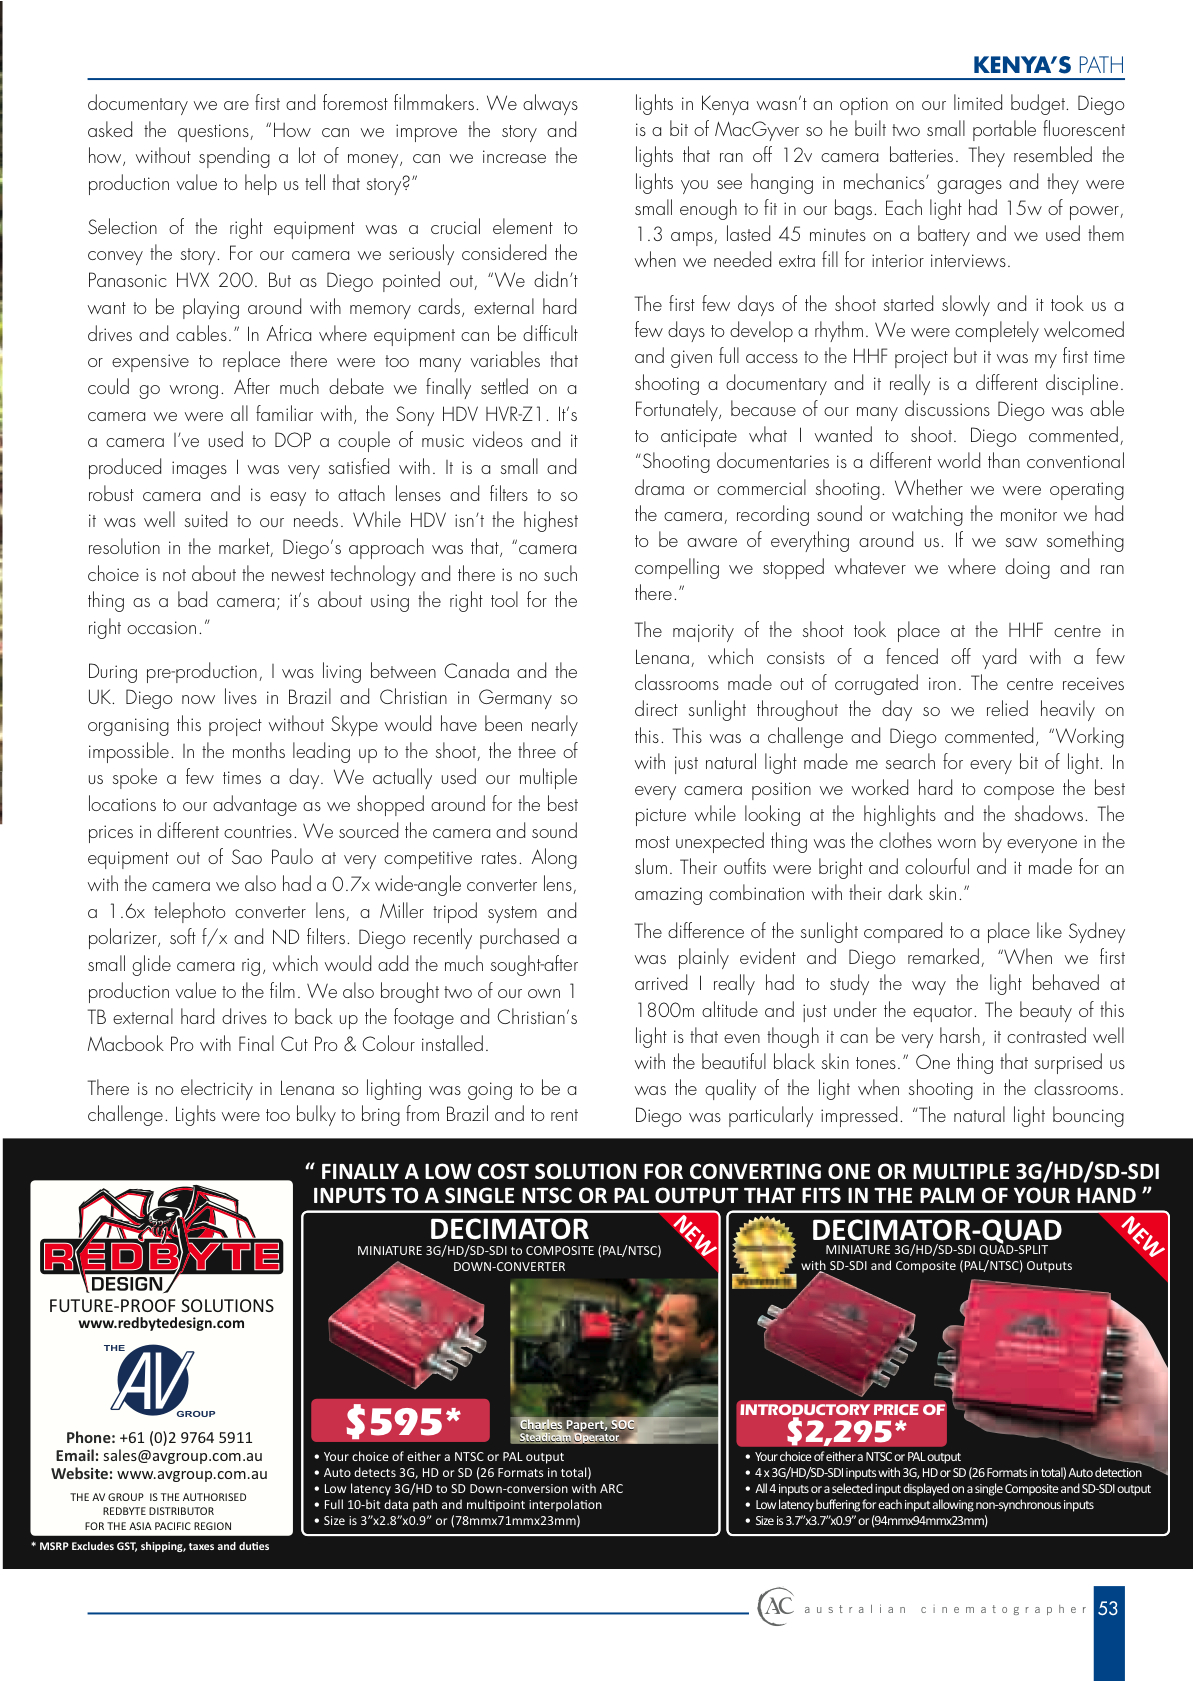 AC 42 Kenyas Path Article Pg 3